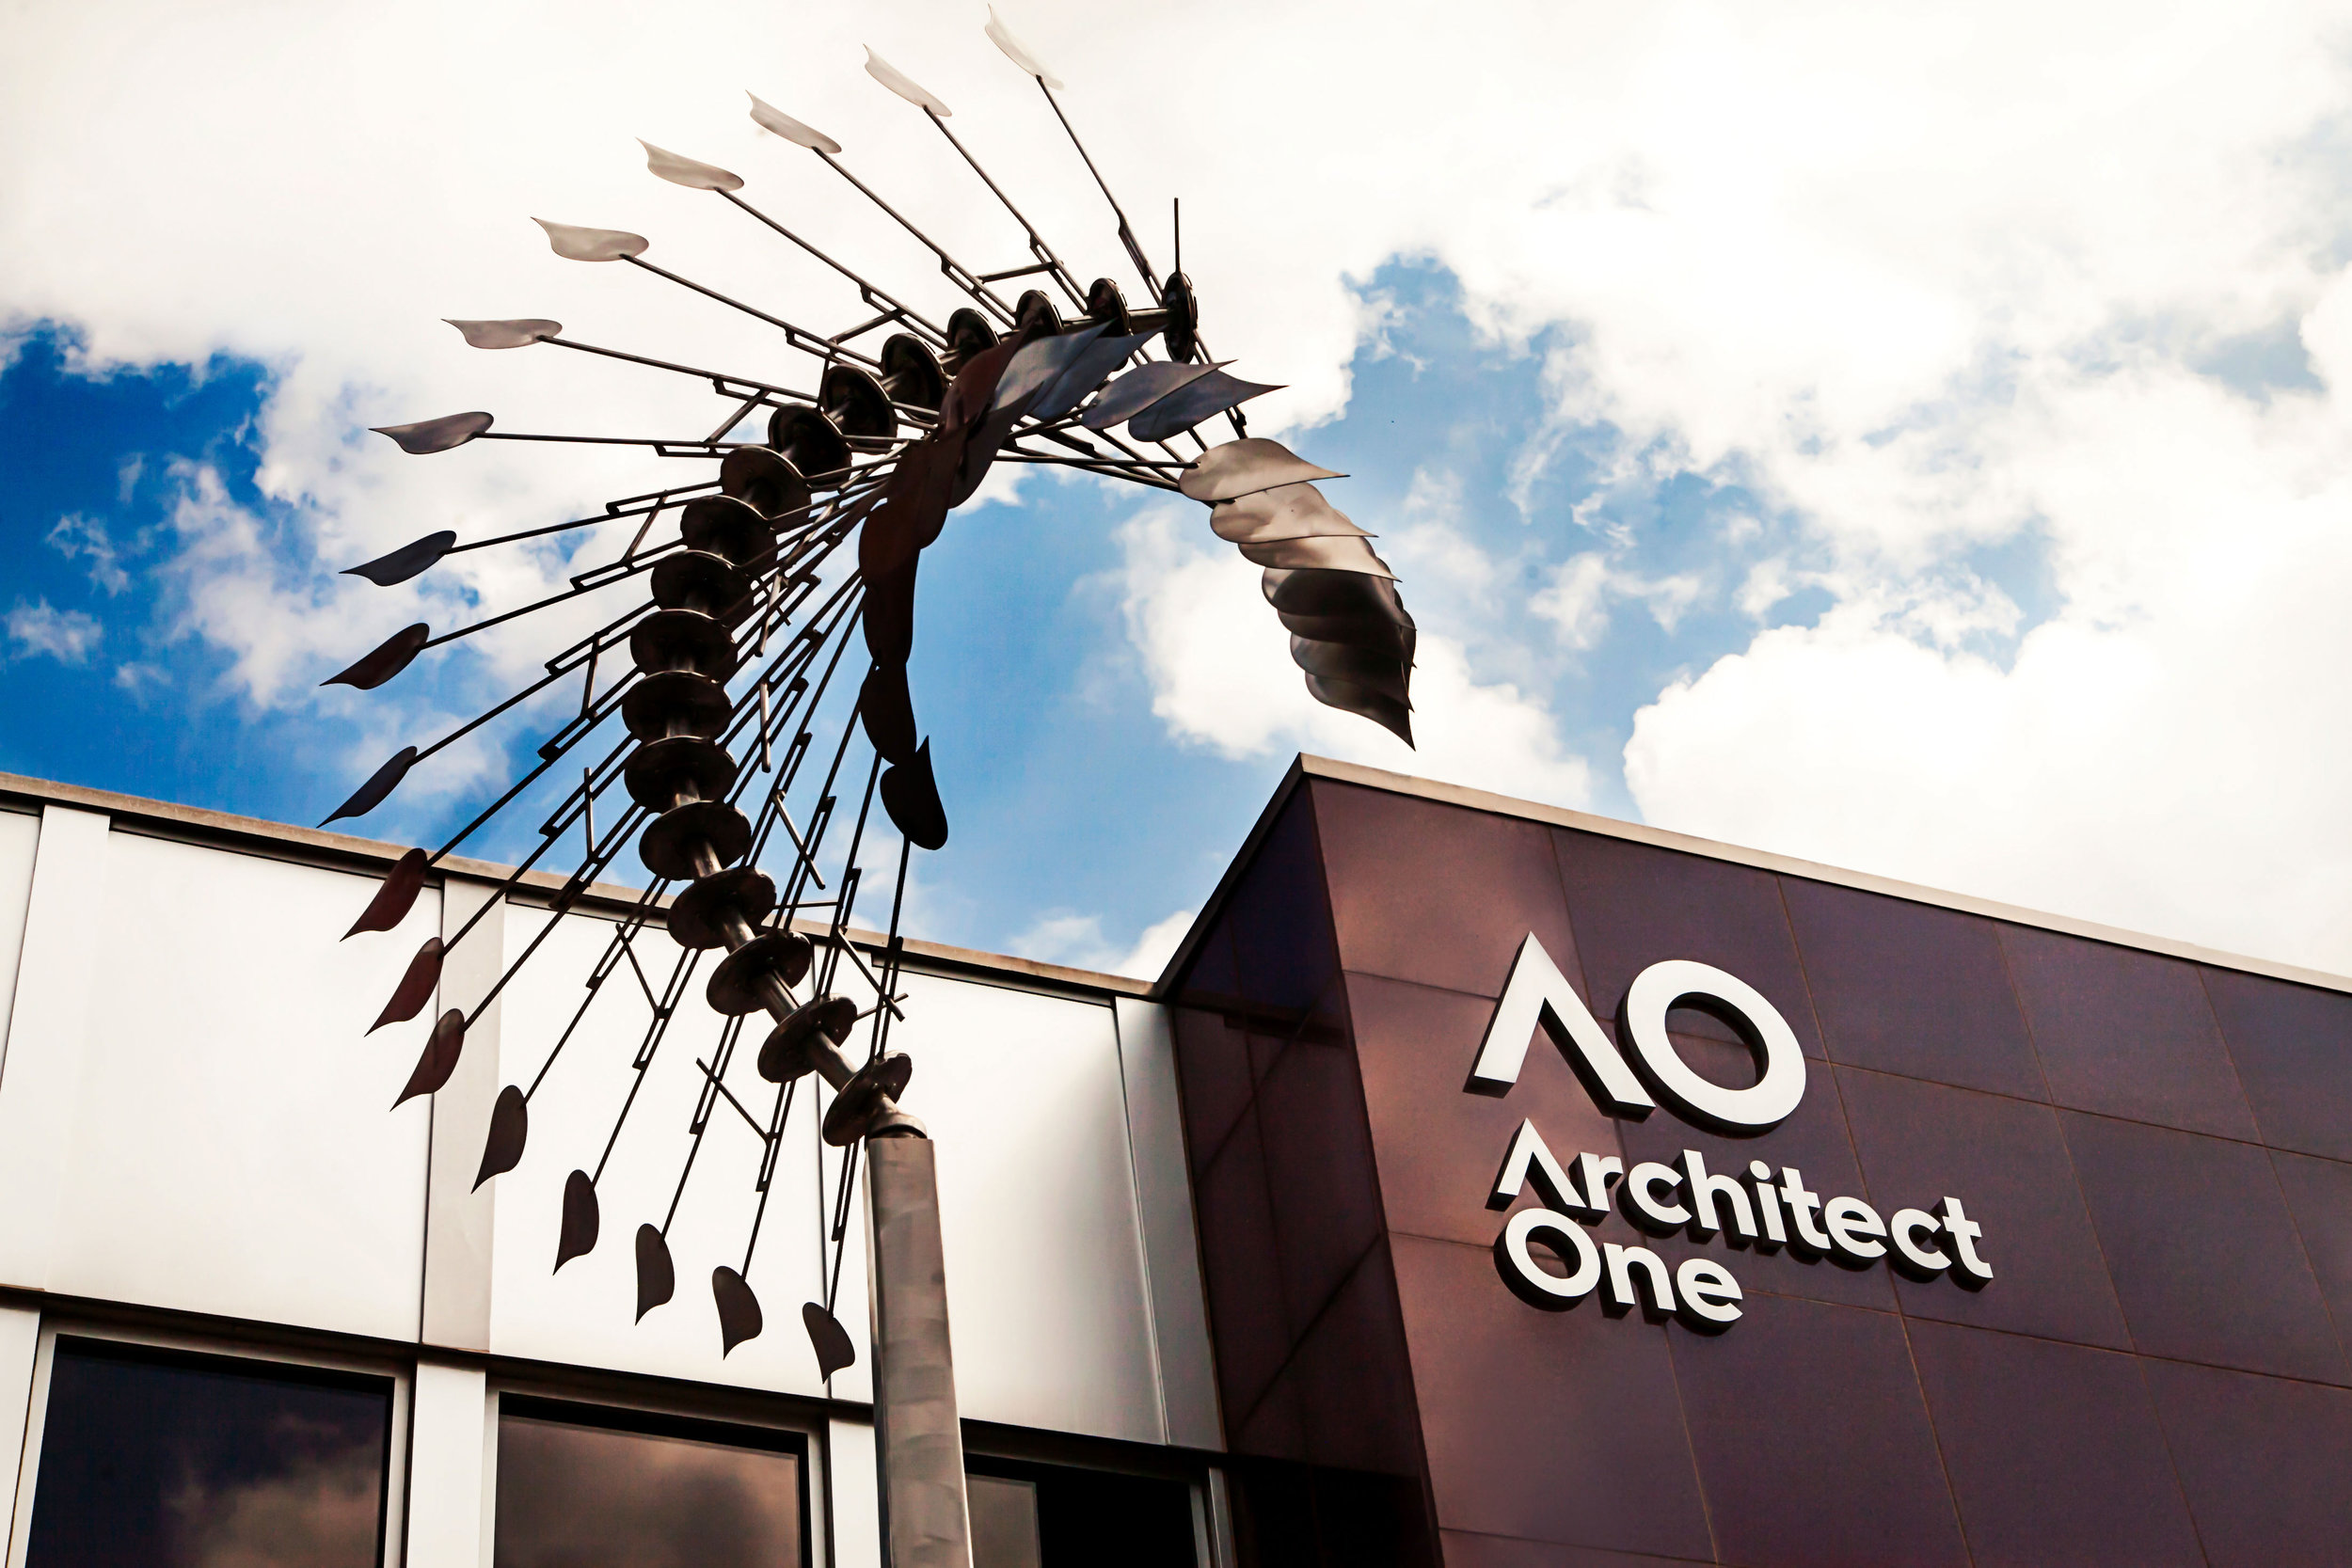 Architect-One-Services.jpg